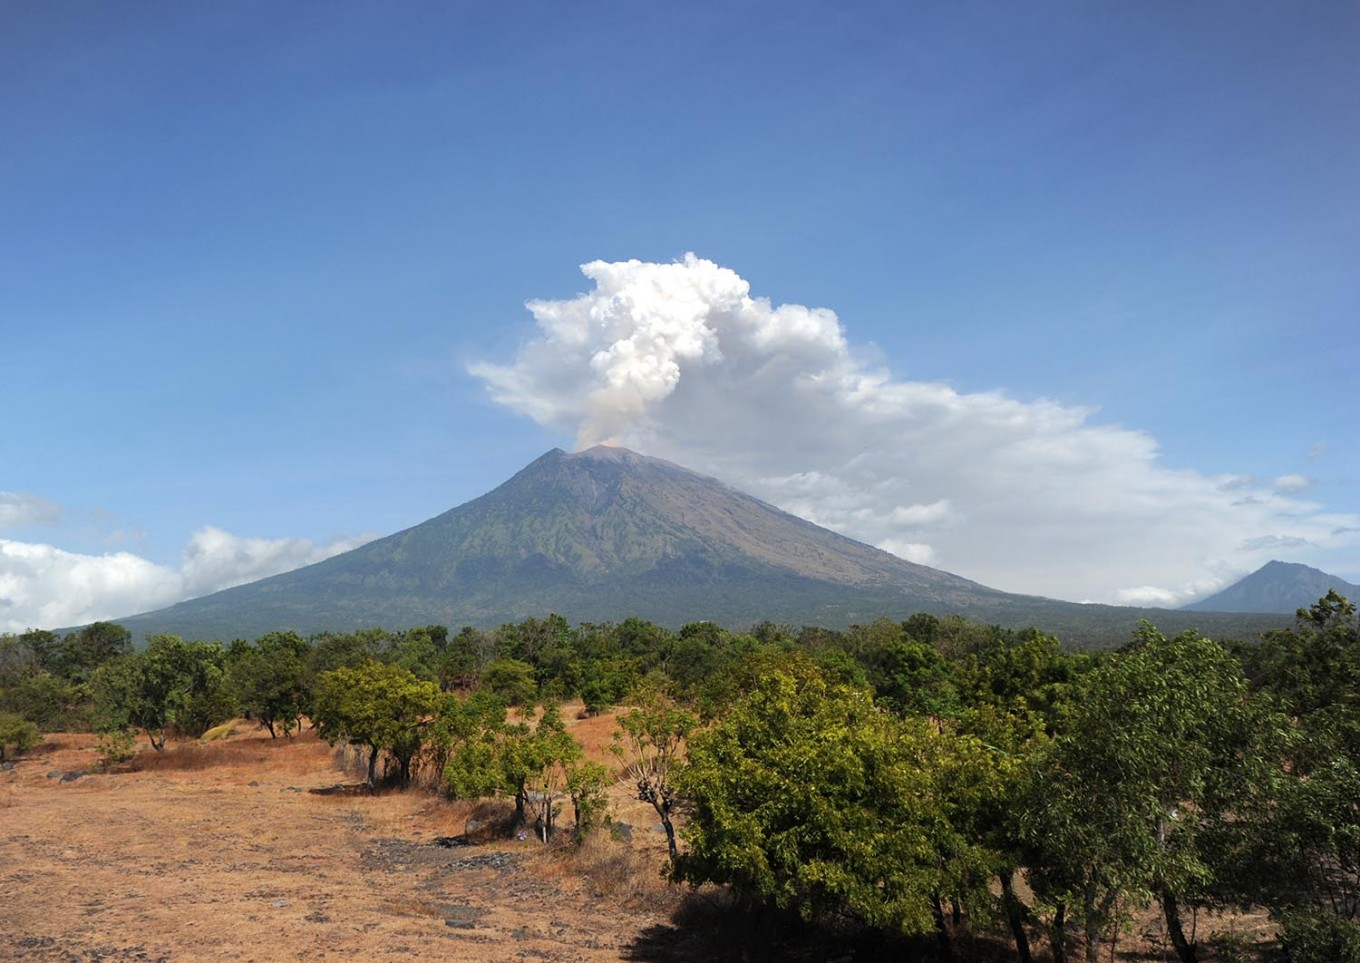 Residents along rivers warned after Mt. Agung eruption